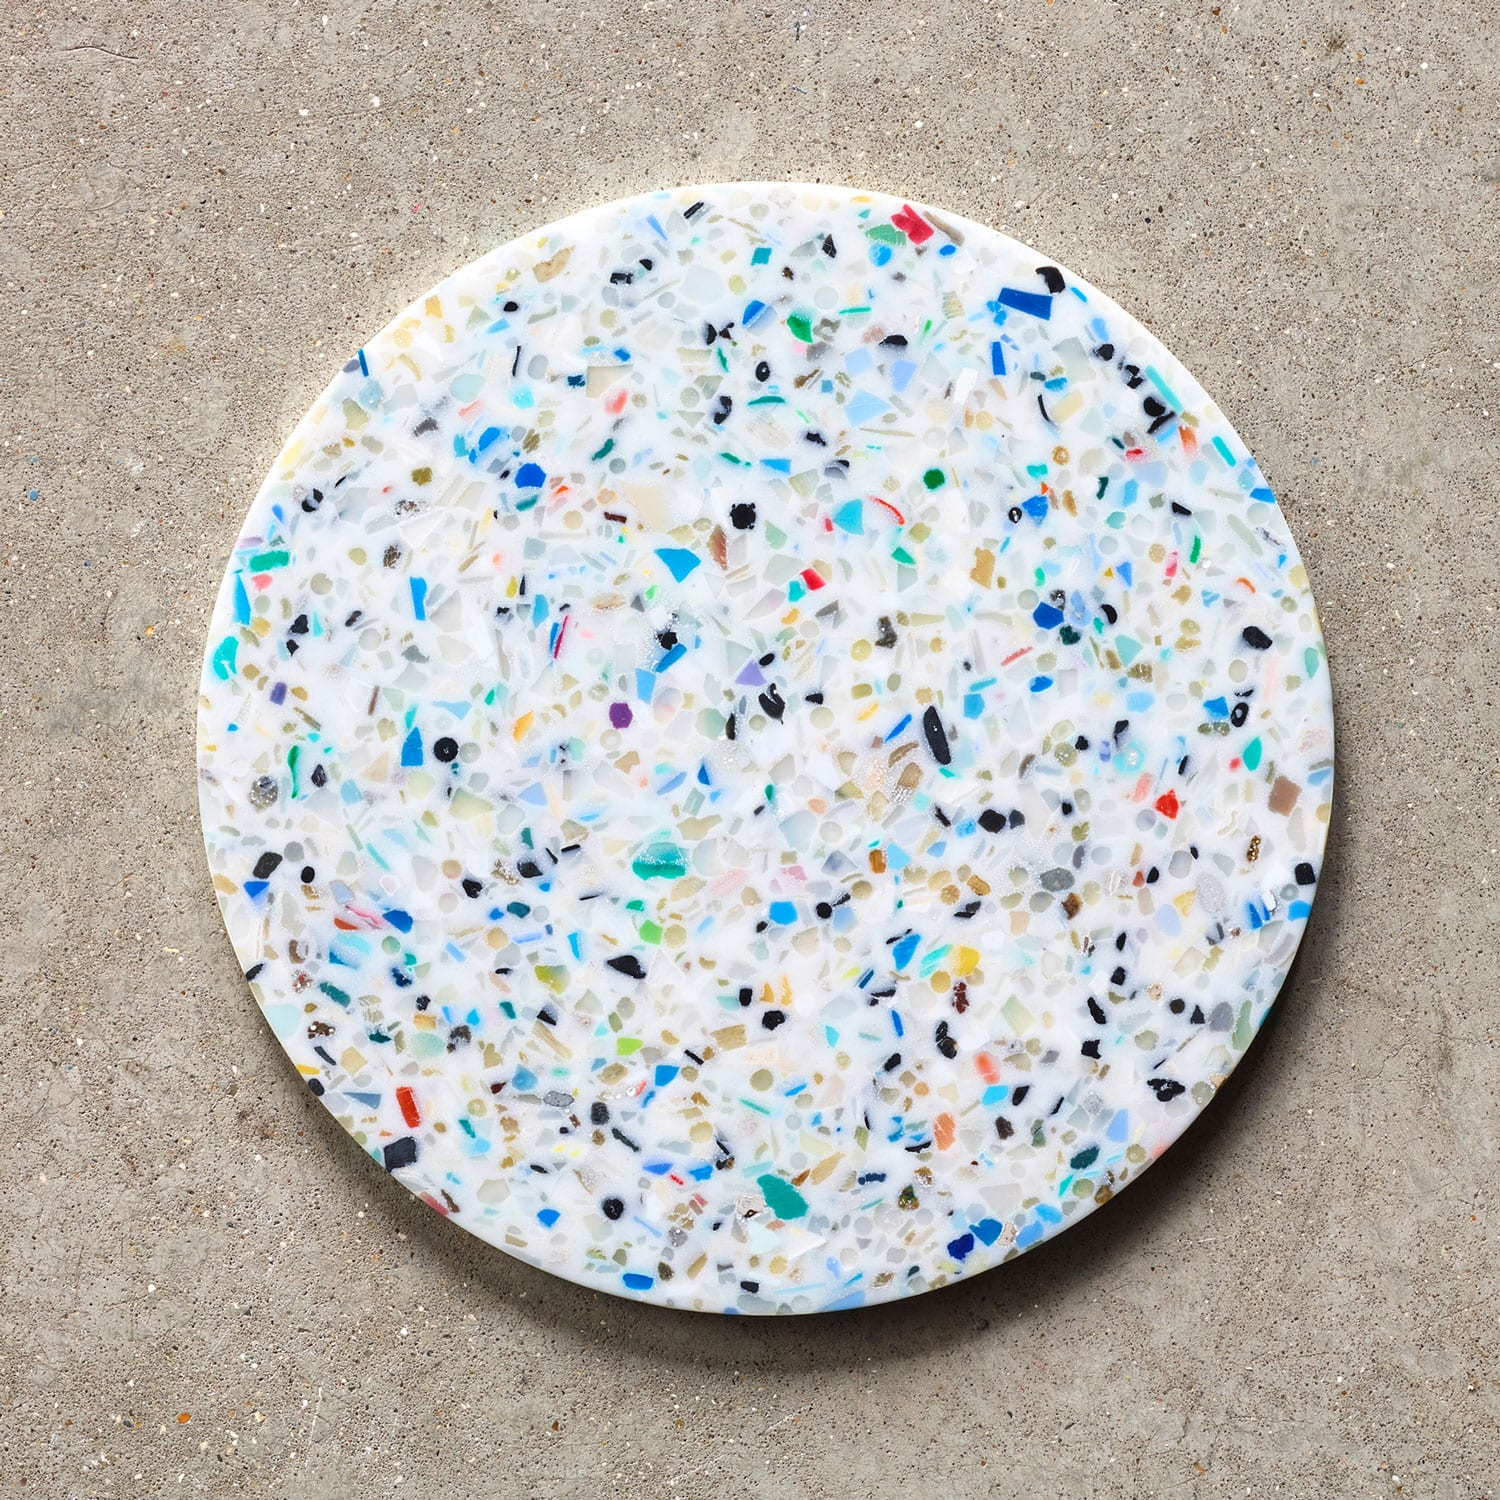 Ocean Terrazzo with Waterfall Installation by Brodie Neill | Yellowtrace